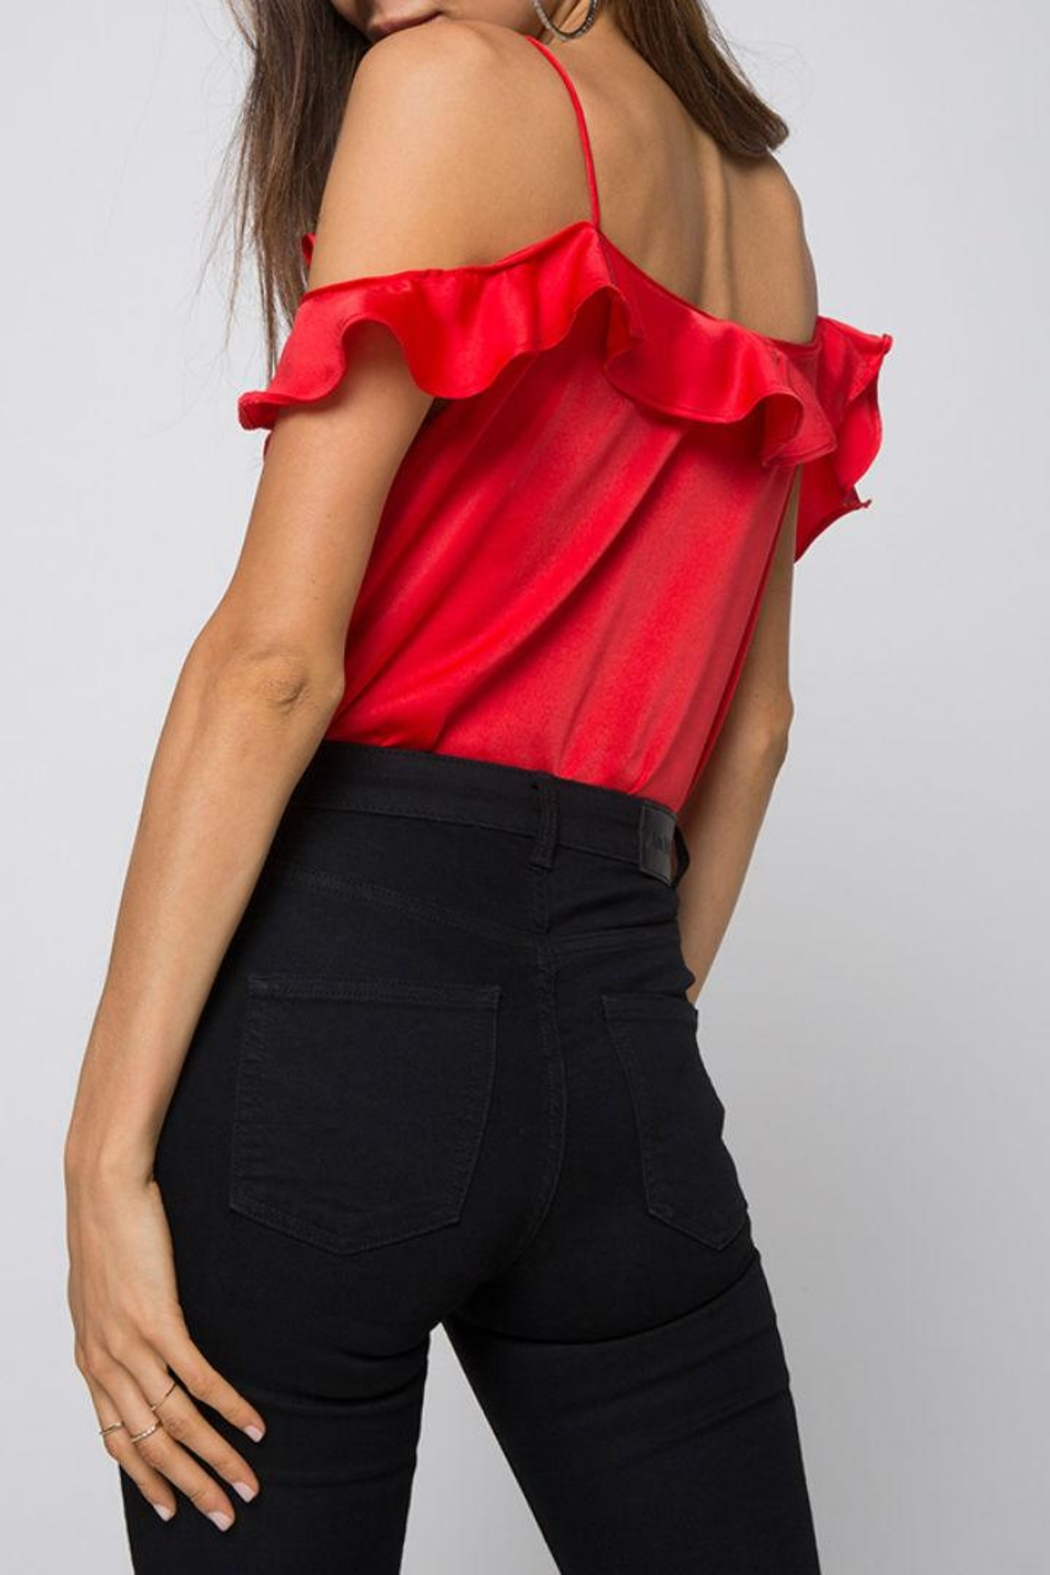 Motel Rocks Red Ruffle Bodysuit - Back Cropped Image